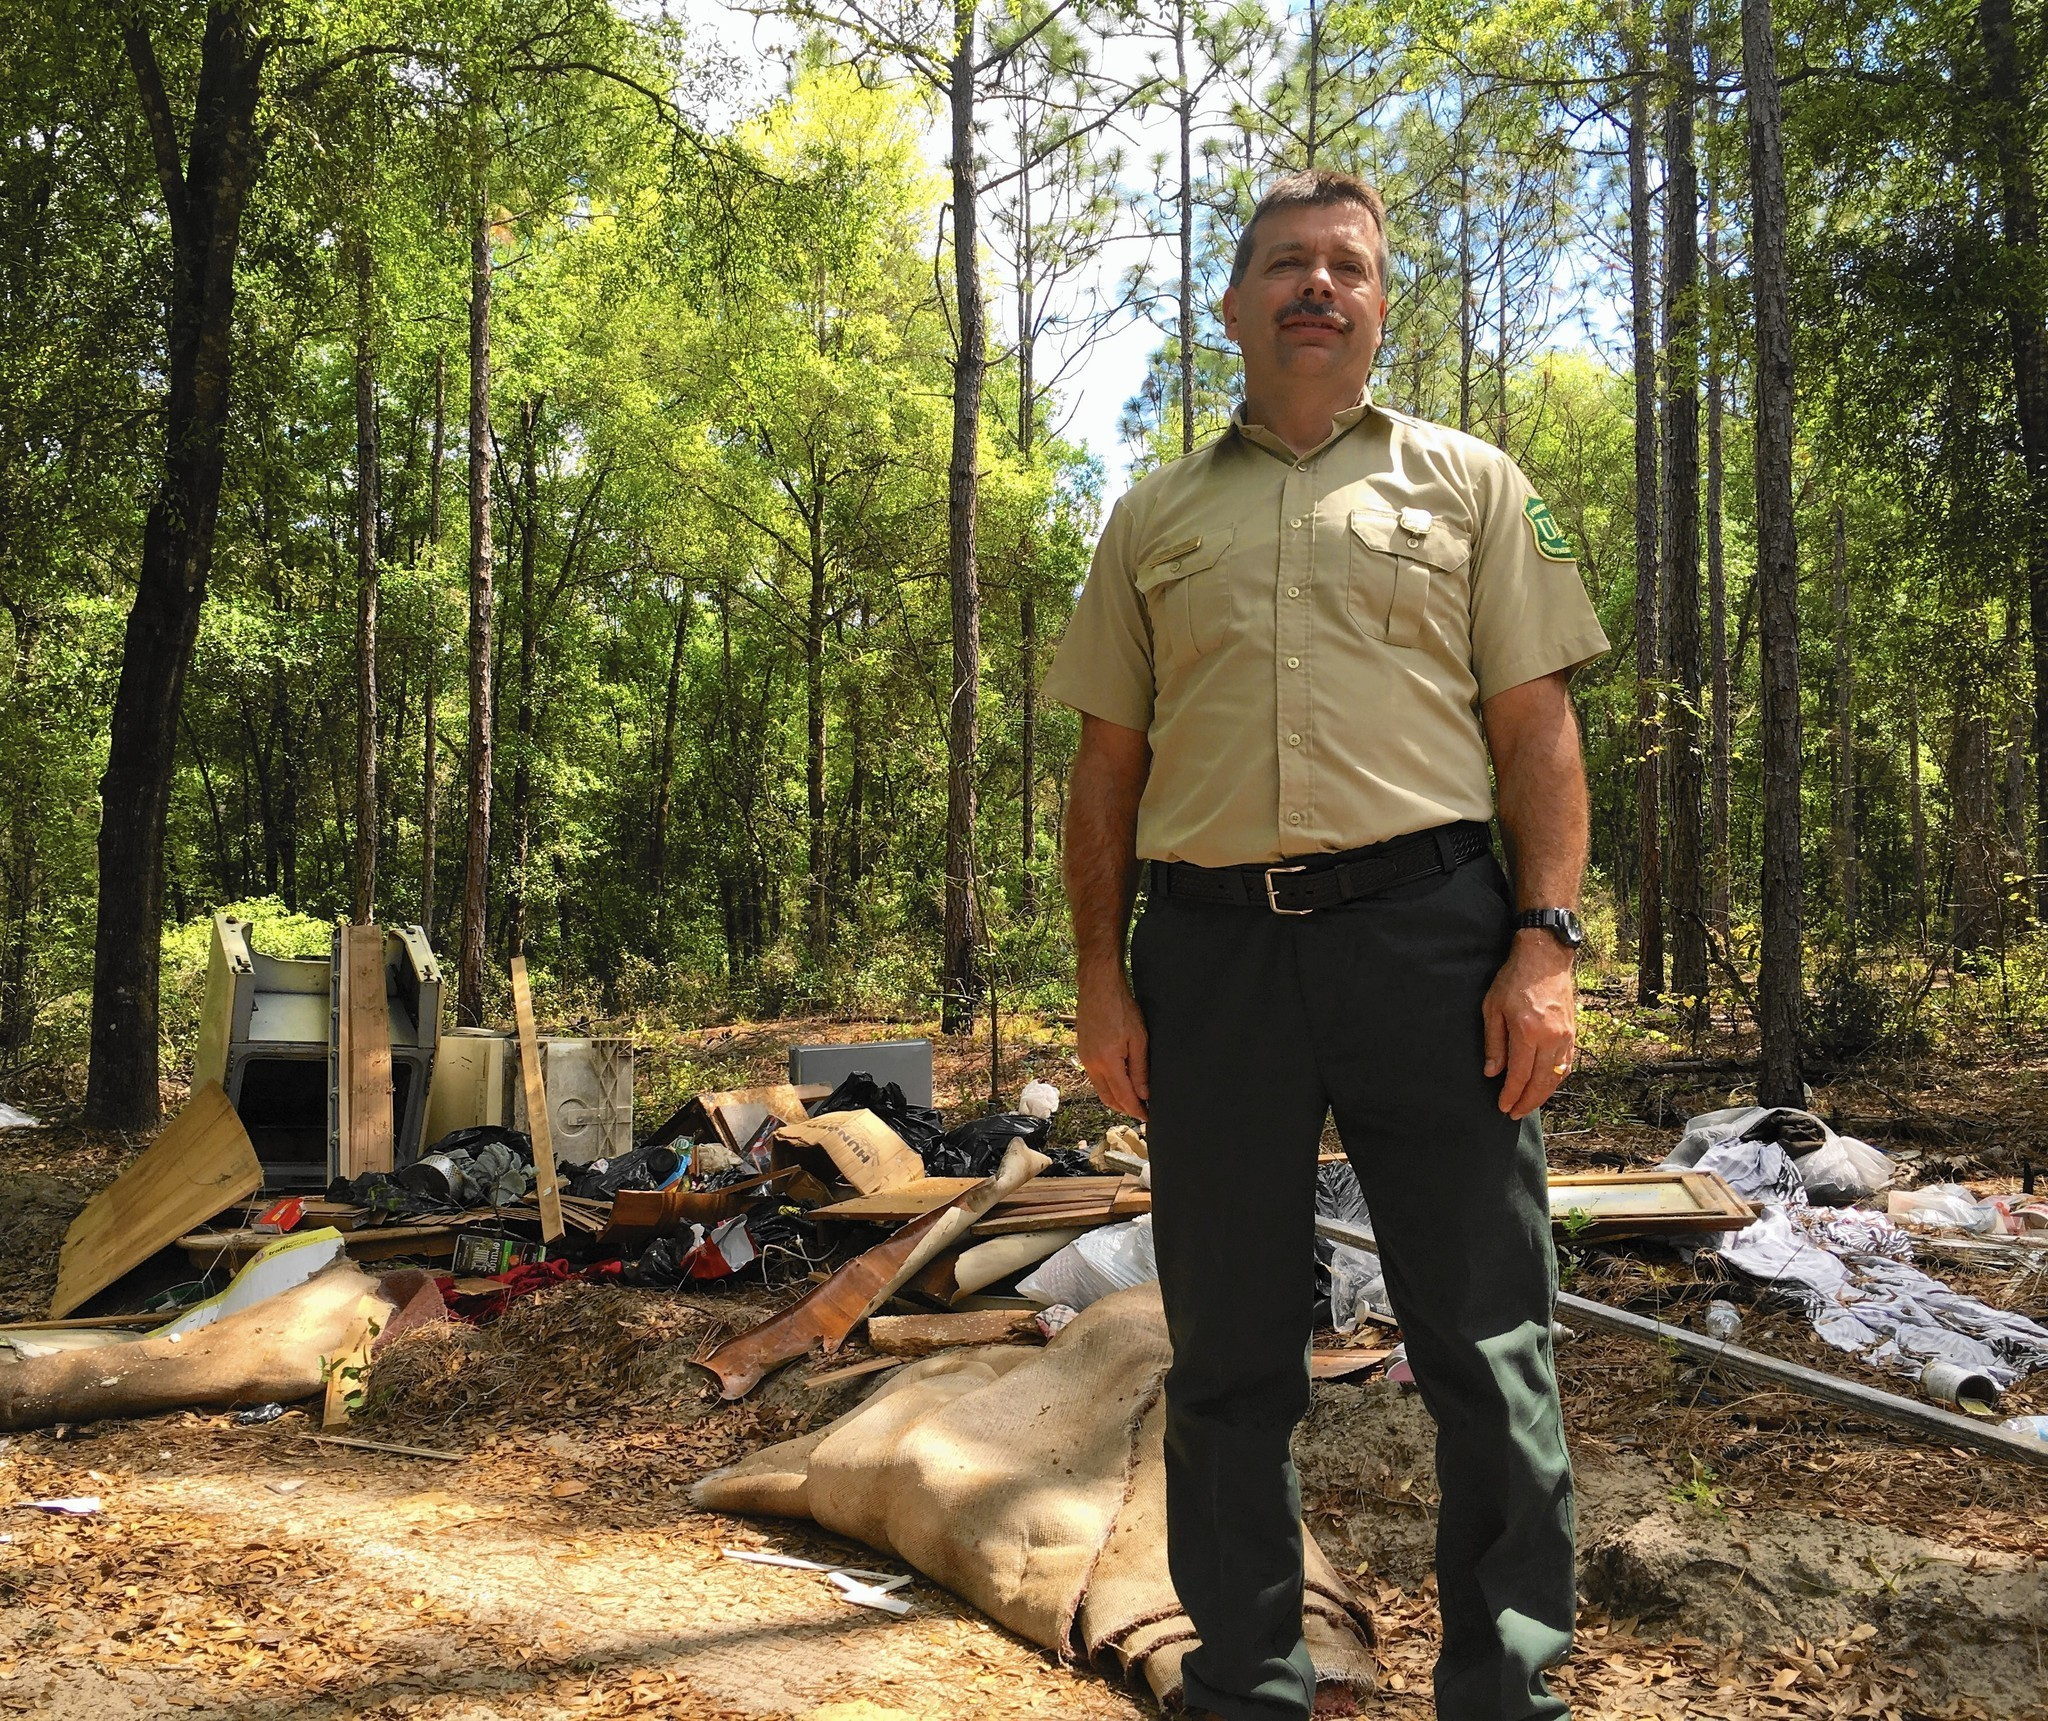 Ocala National Forest Officials Miffed As Trash Piles Up